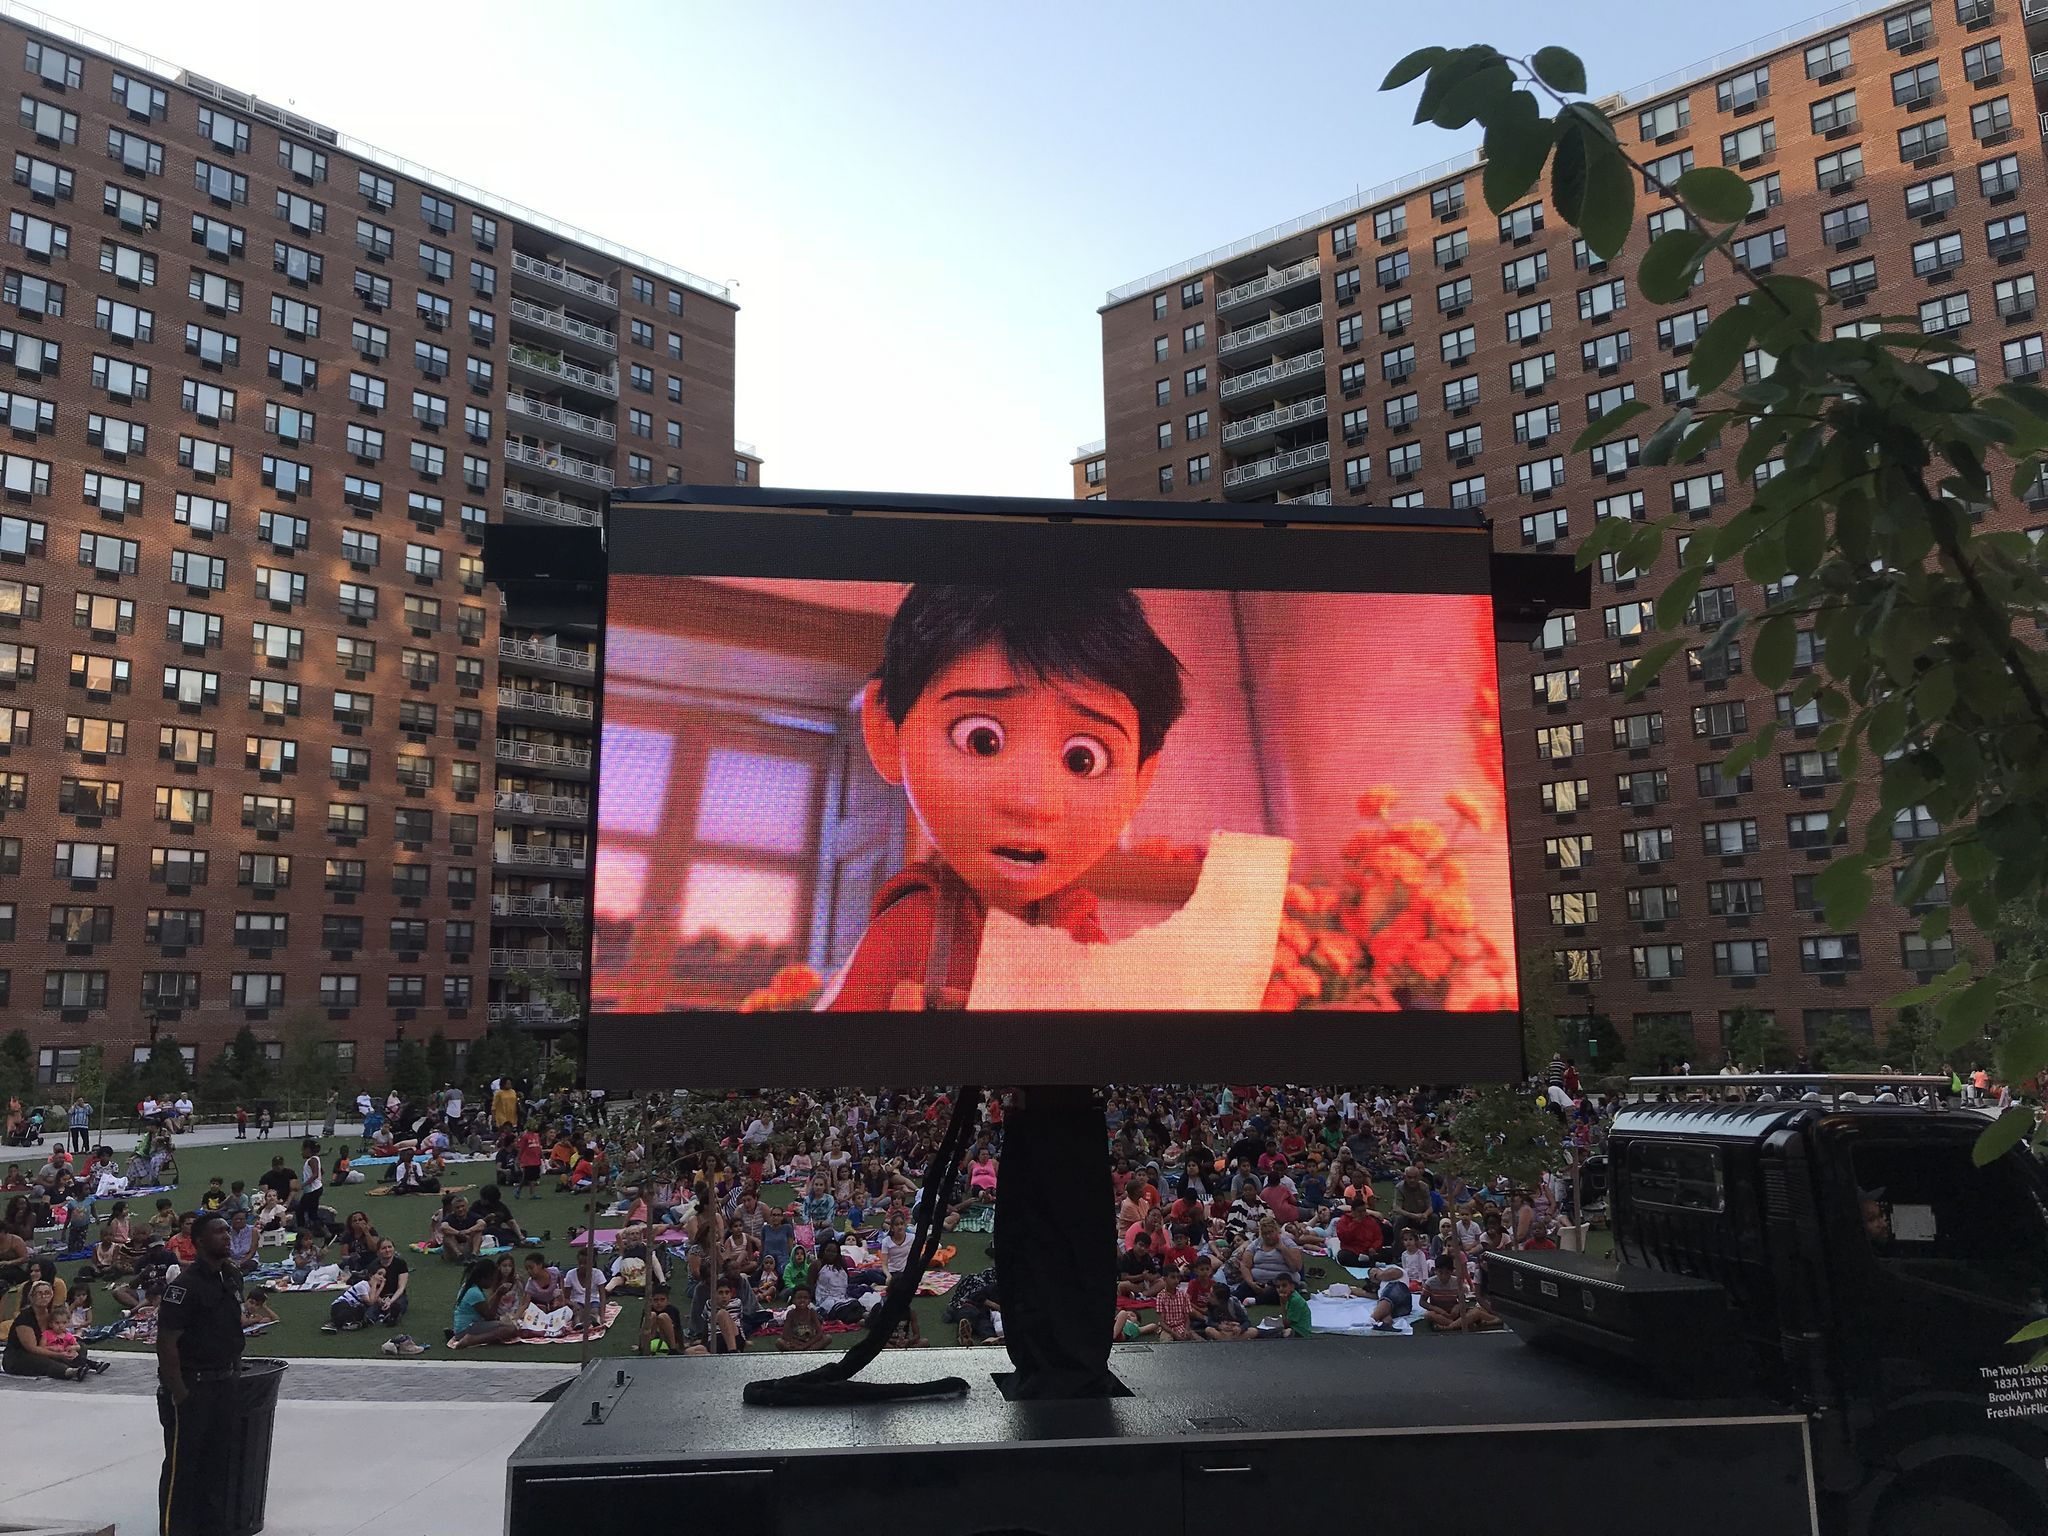 Coco - featured presentation during LeFrak City's Movie Nights